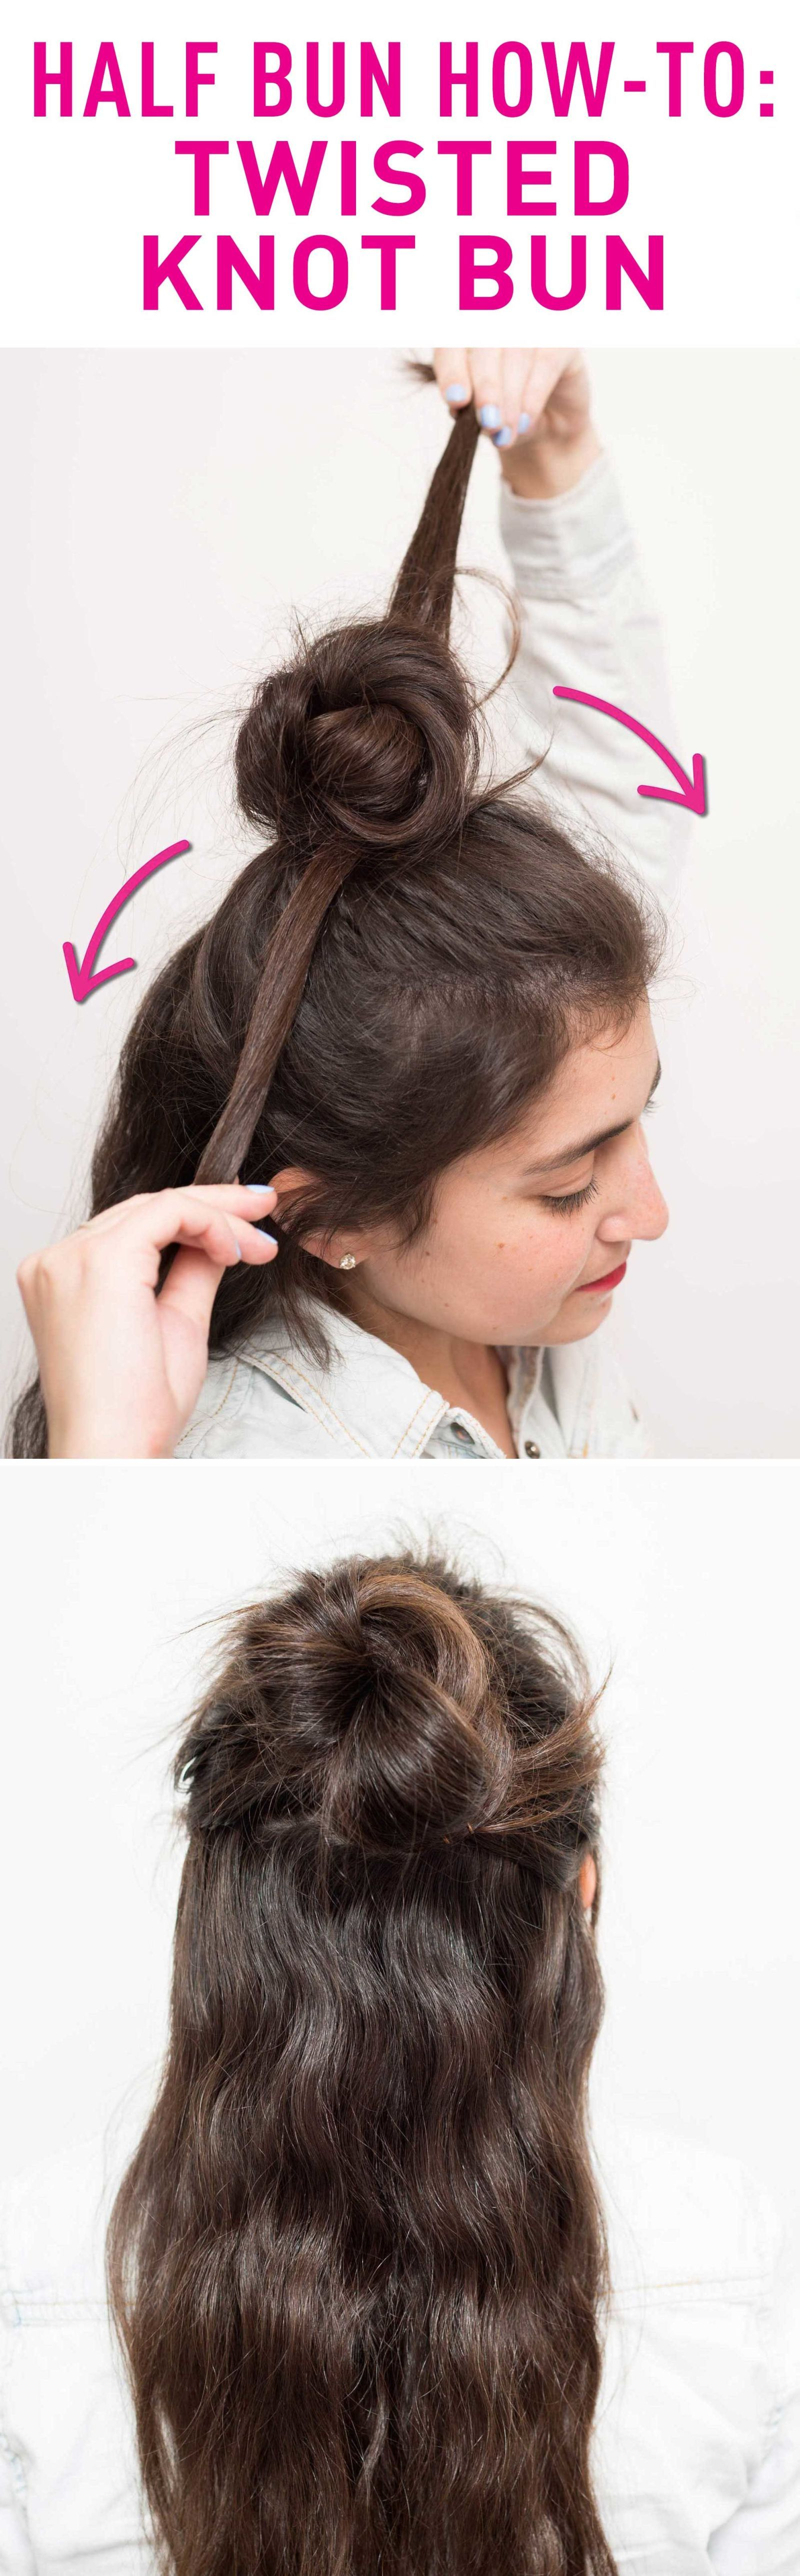 How to make two buns on top of head with short hair